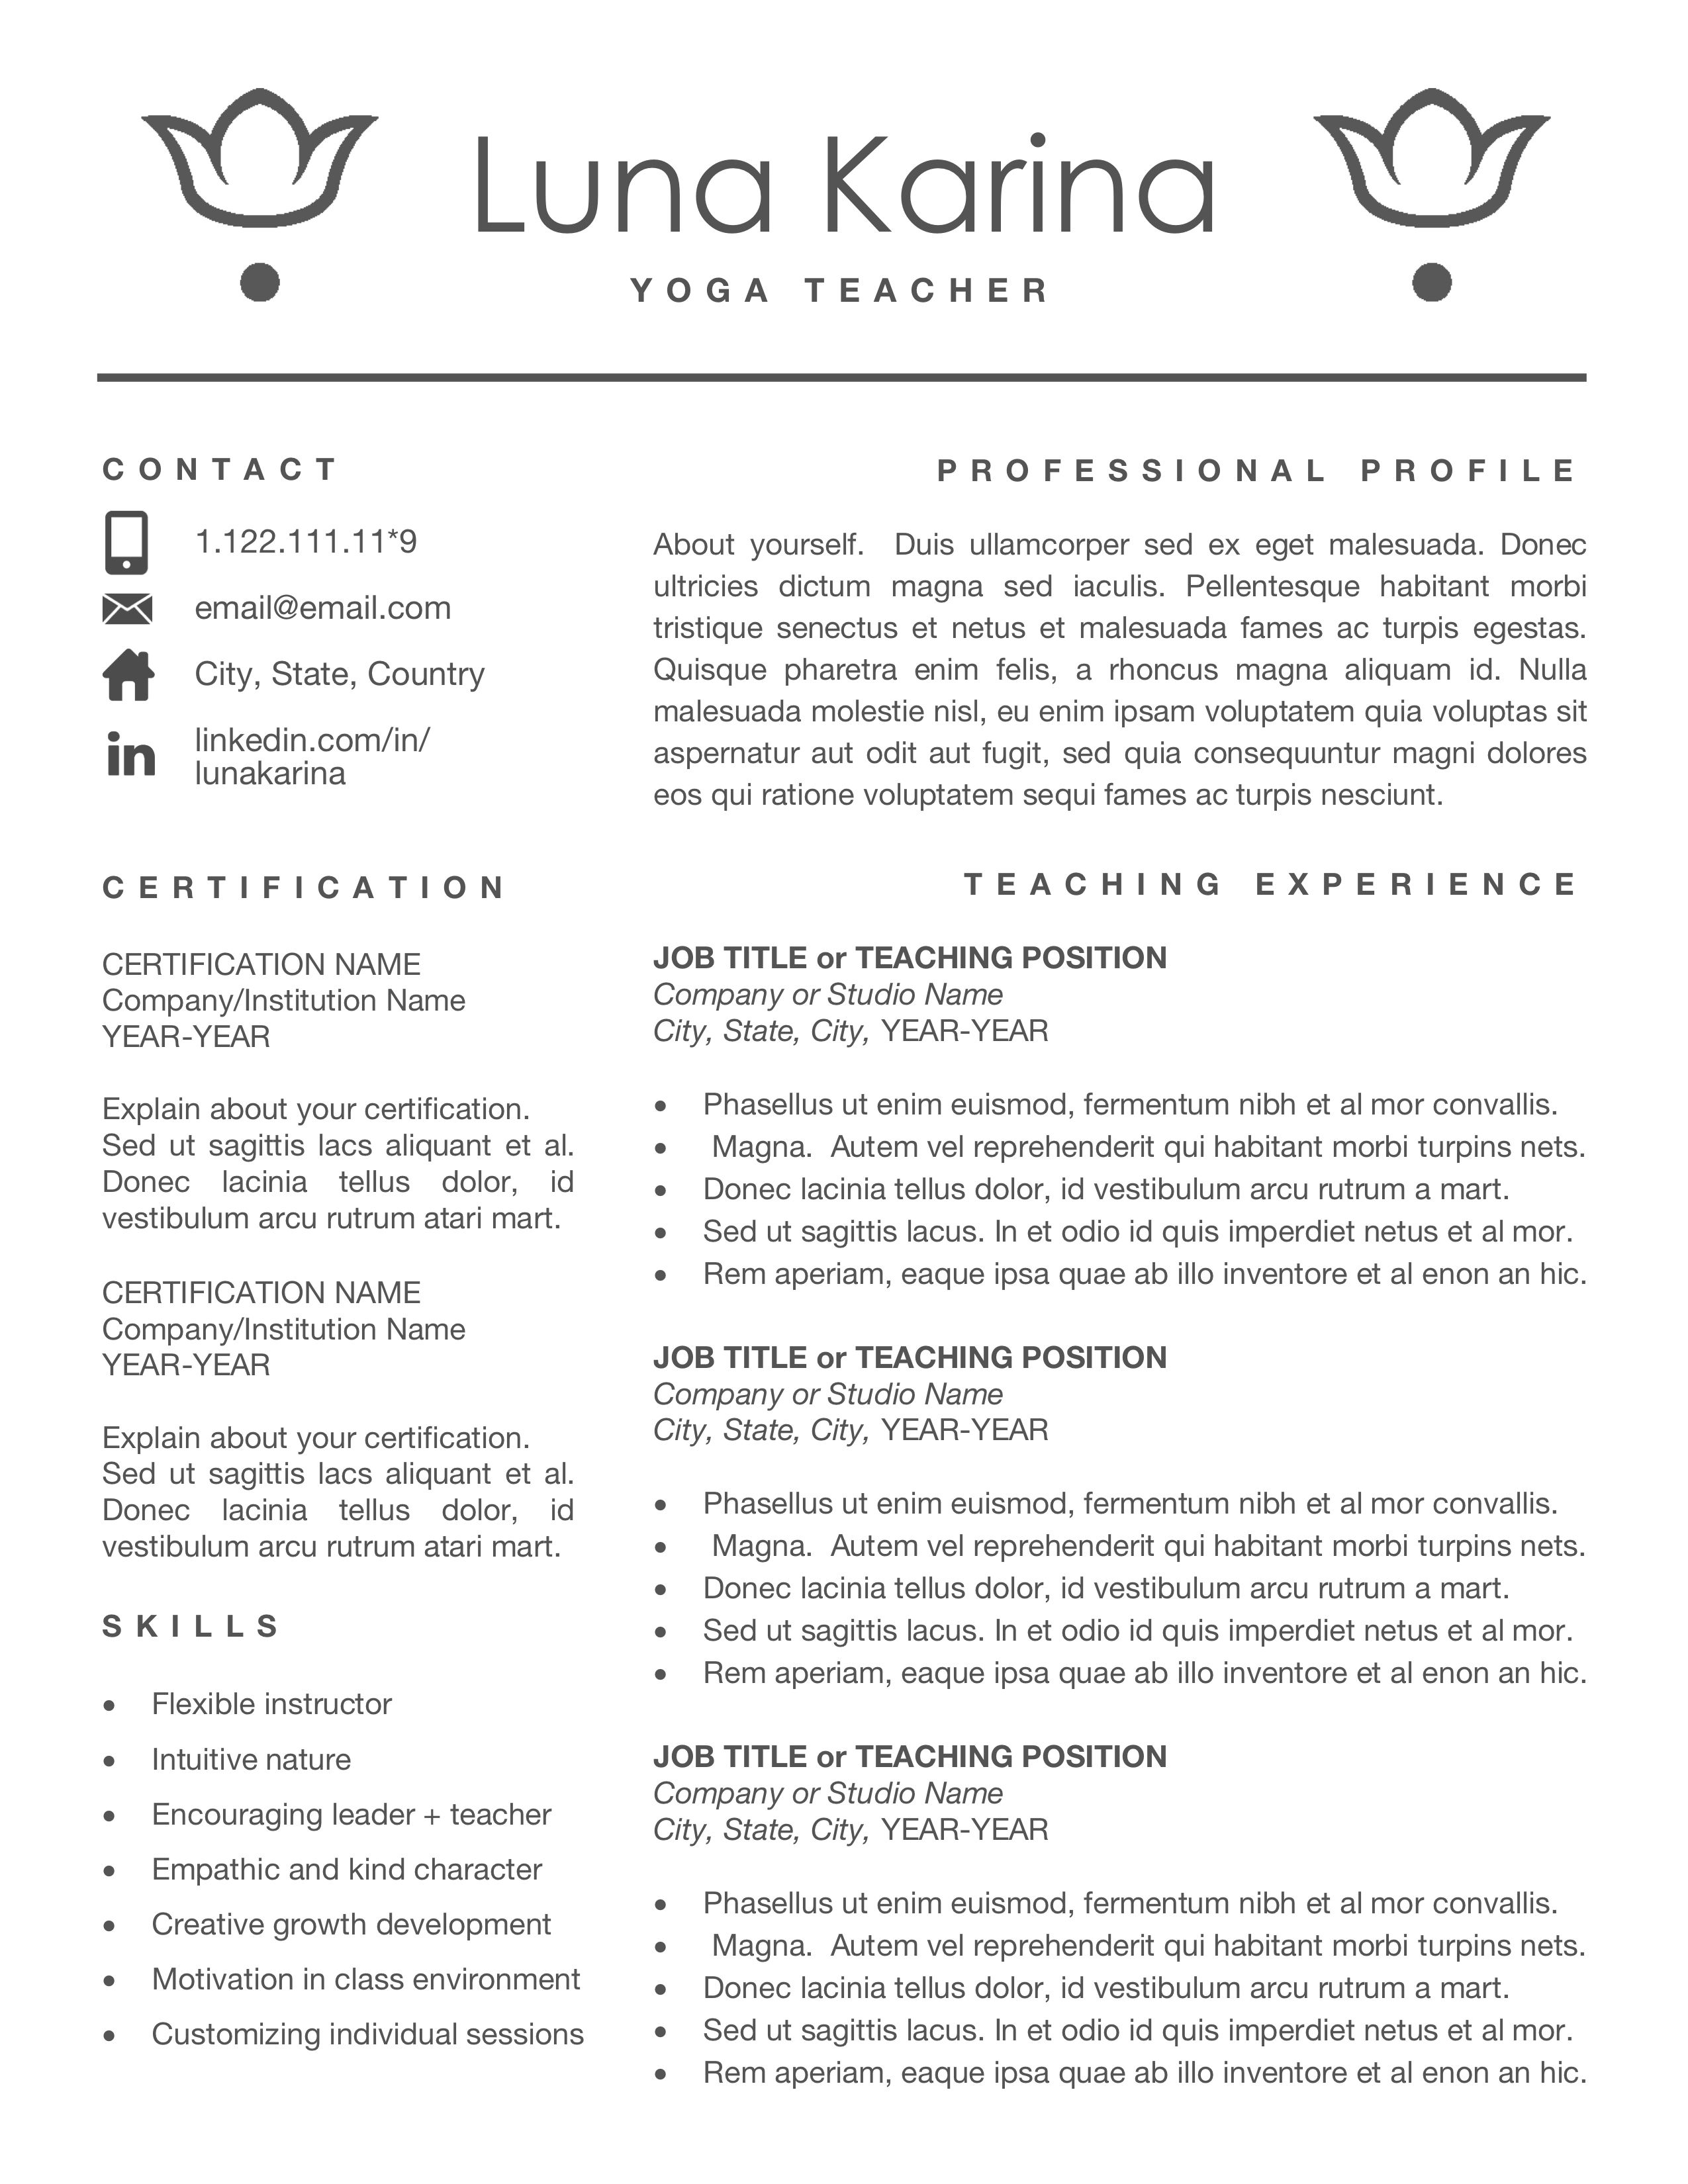 Yoga Resume Template For Mac Pc Gym Resume Design For Word Simple Clean Resume Templates Instant Download Yoga Instructor Cover Letter Yoga Teacher Teacher Resume Yoga Routine For Beginners